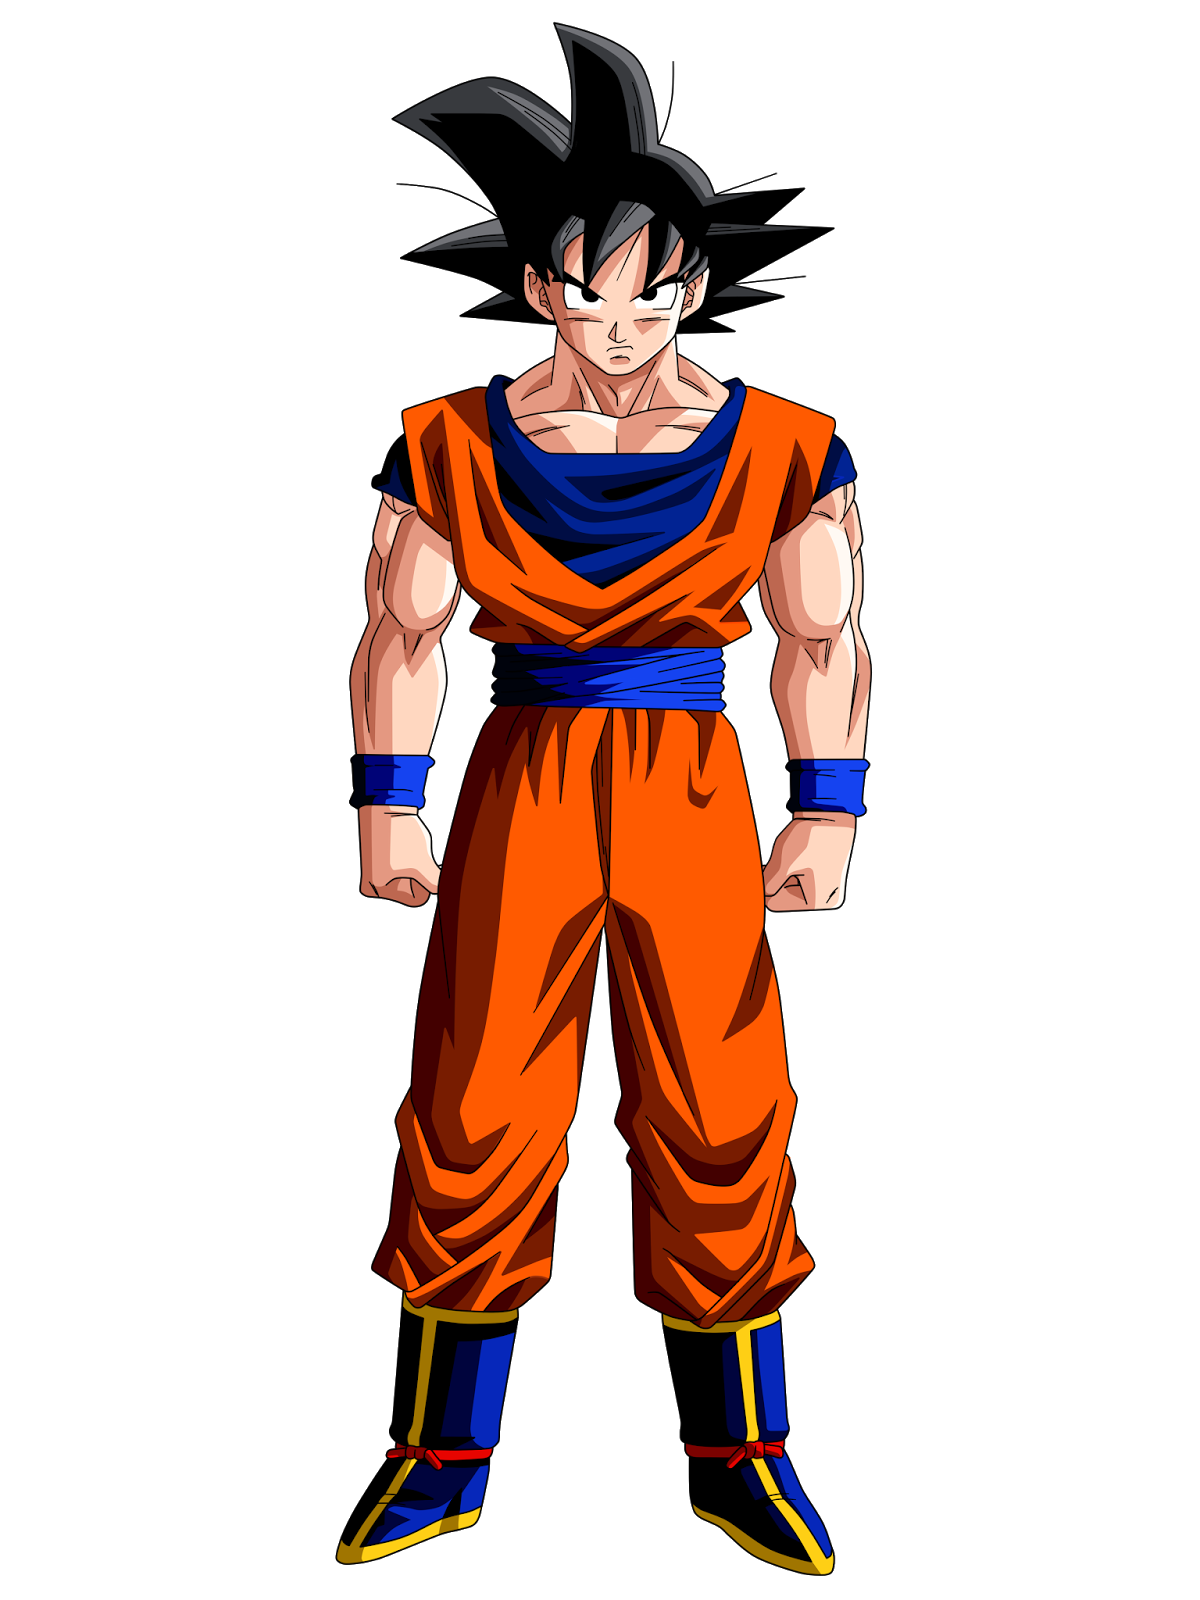 Dragon ball z gt kai renders de dragon ball parte 1 - Photo dragon ball z ...